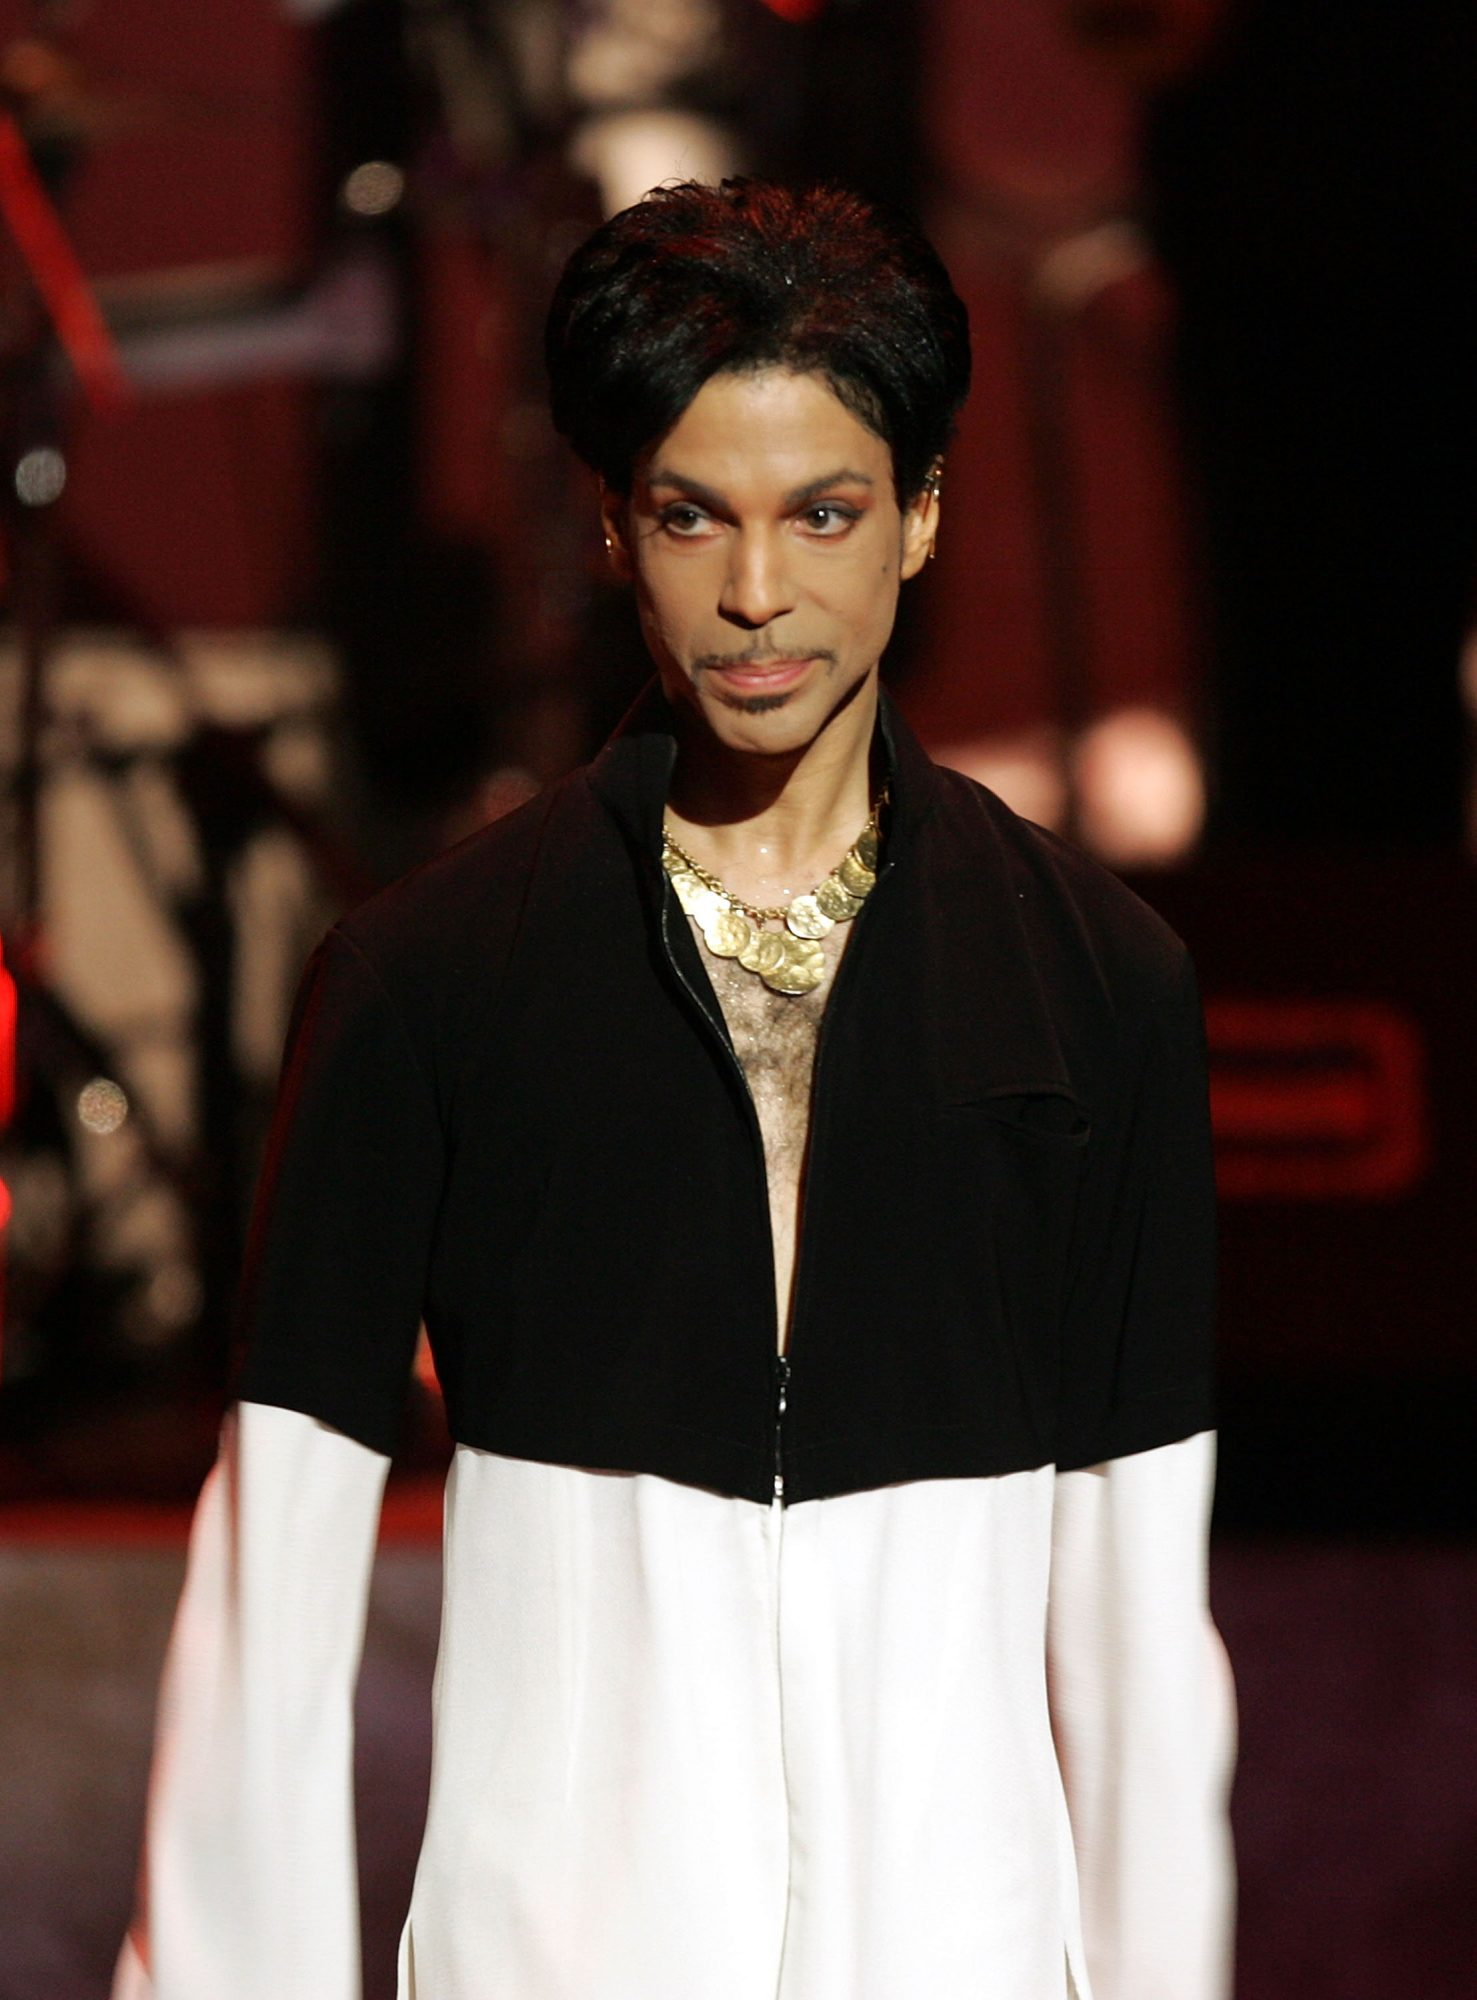 What Is Fentanyl? The Facts About the Opioid That Caused Prince's Death